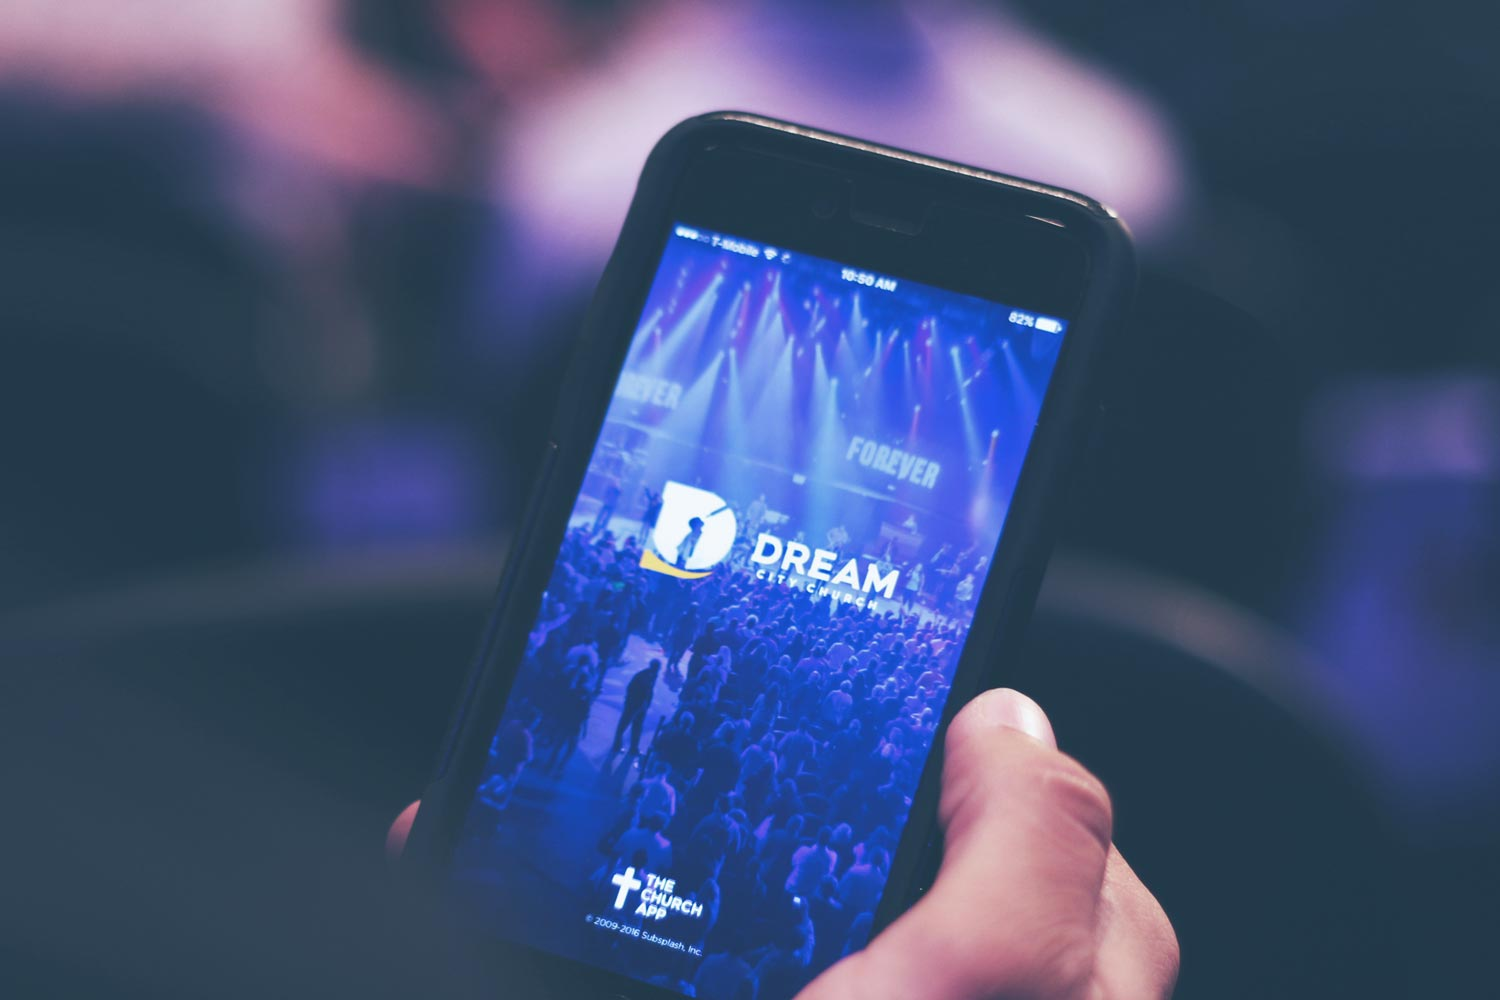 Dream City Church mobile app screen